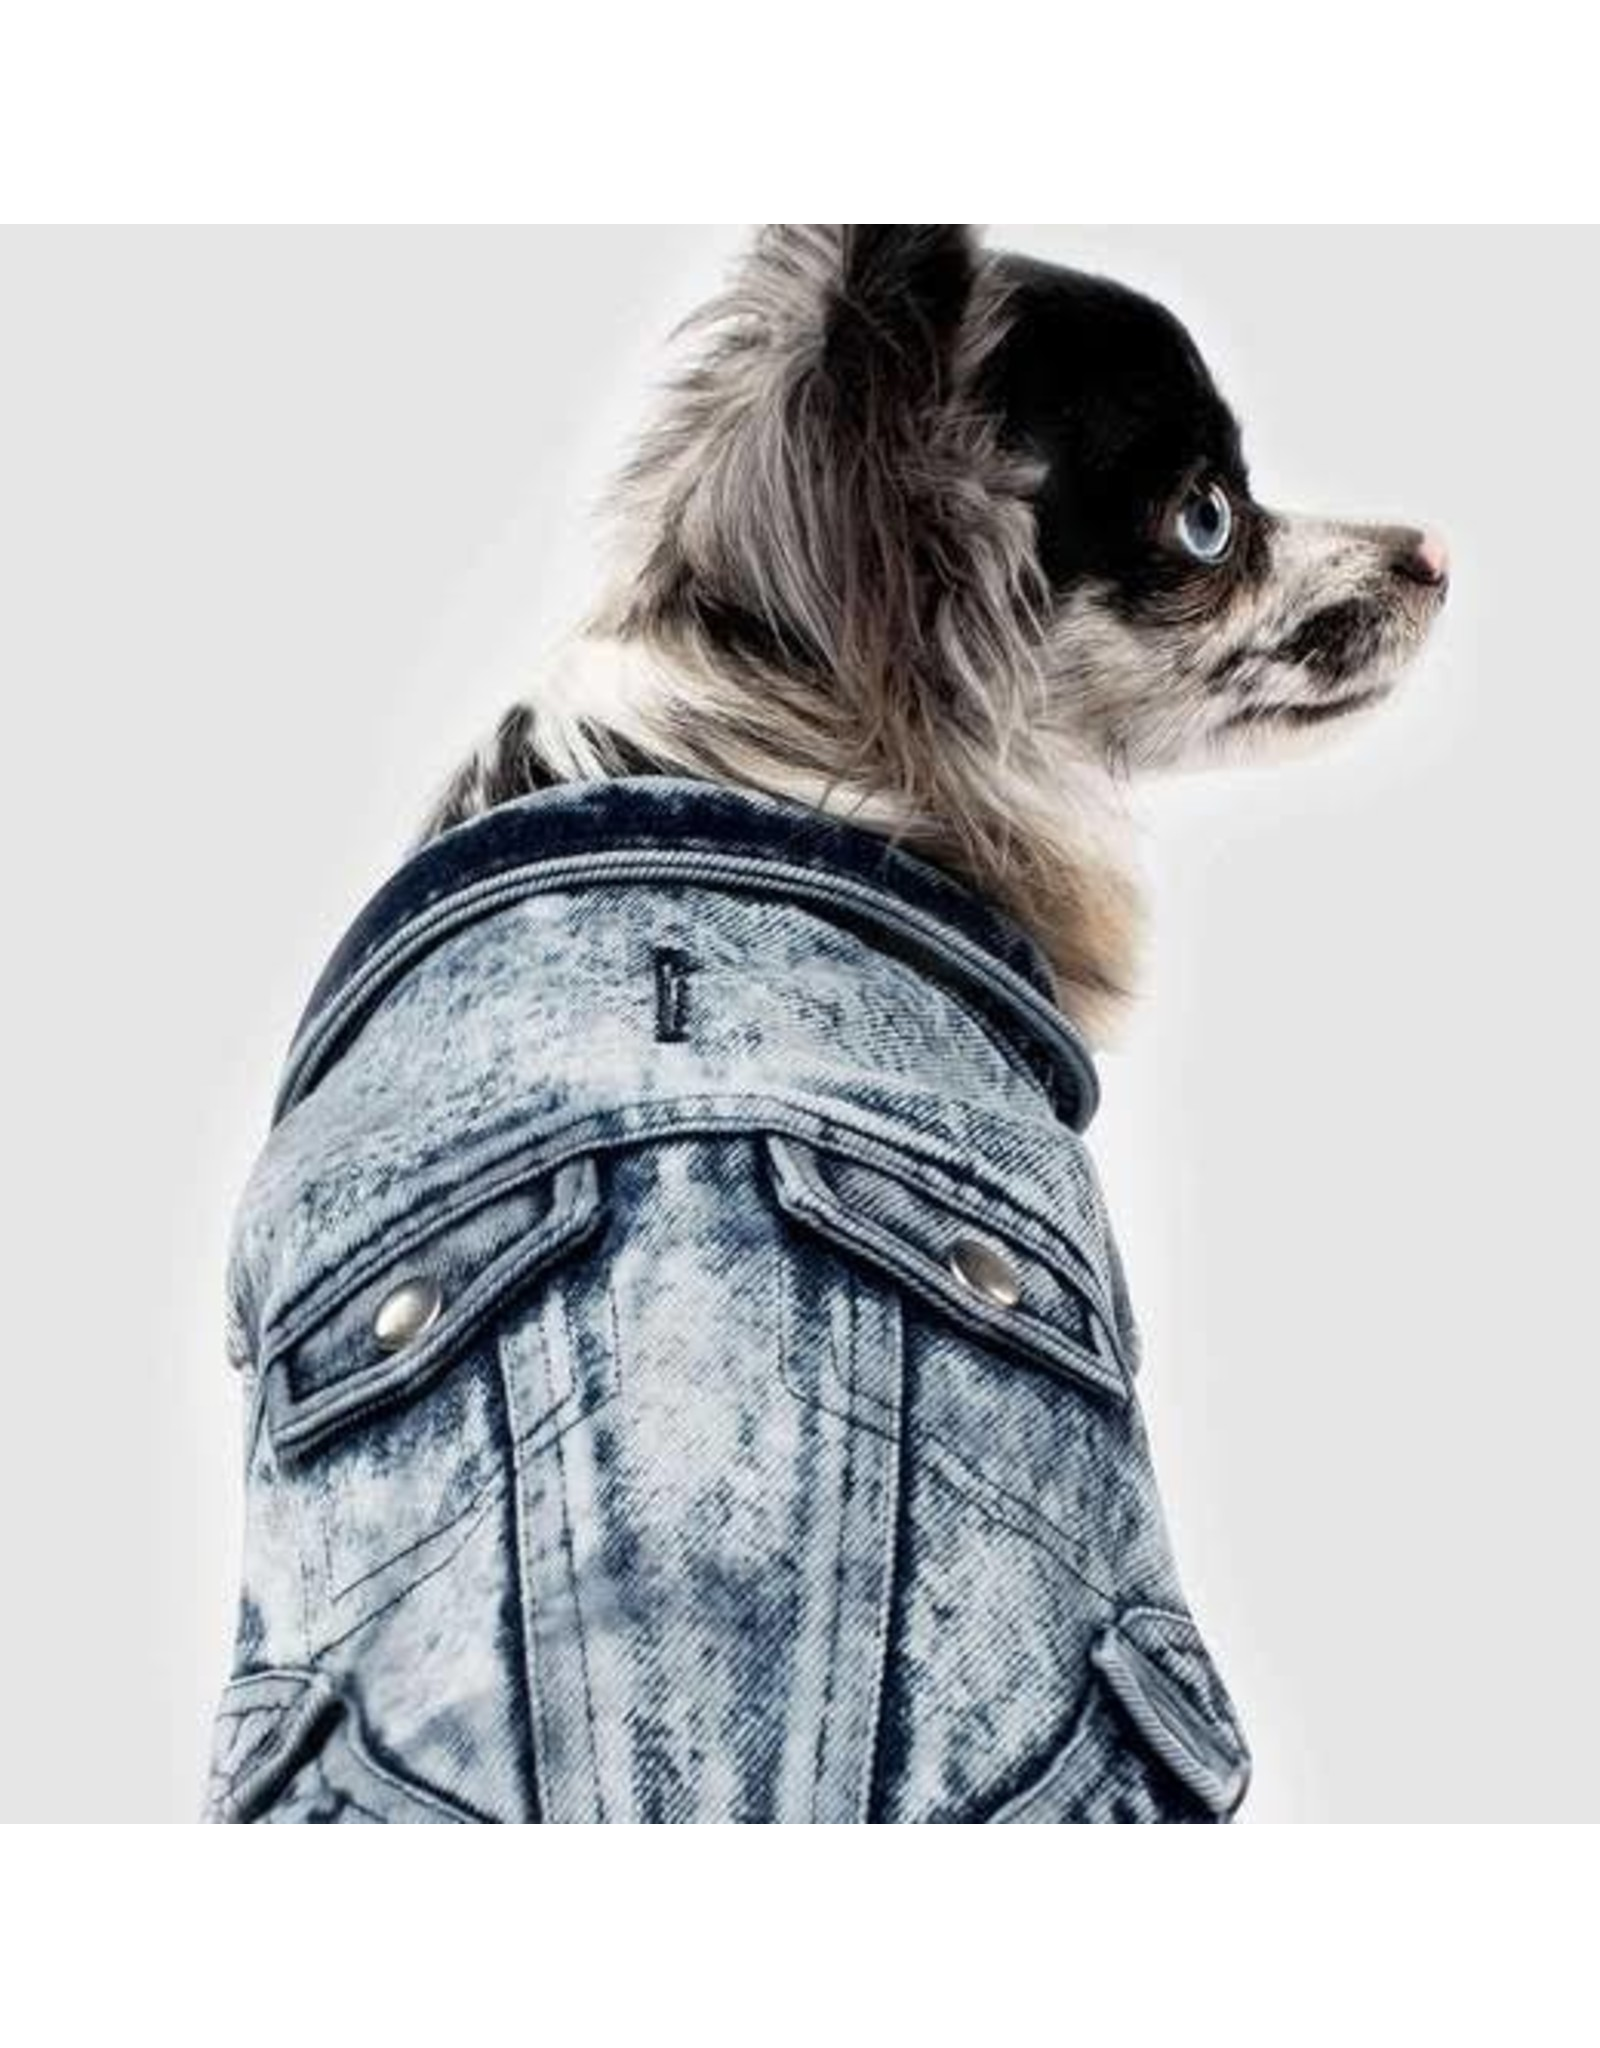 Canada Pooch Canada Pooch Downtown Blue Denim Jean Vest for Dogs and Cats